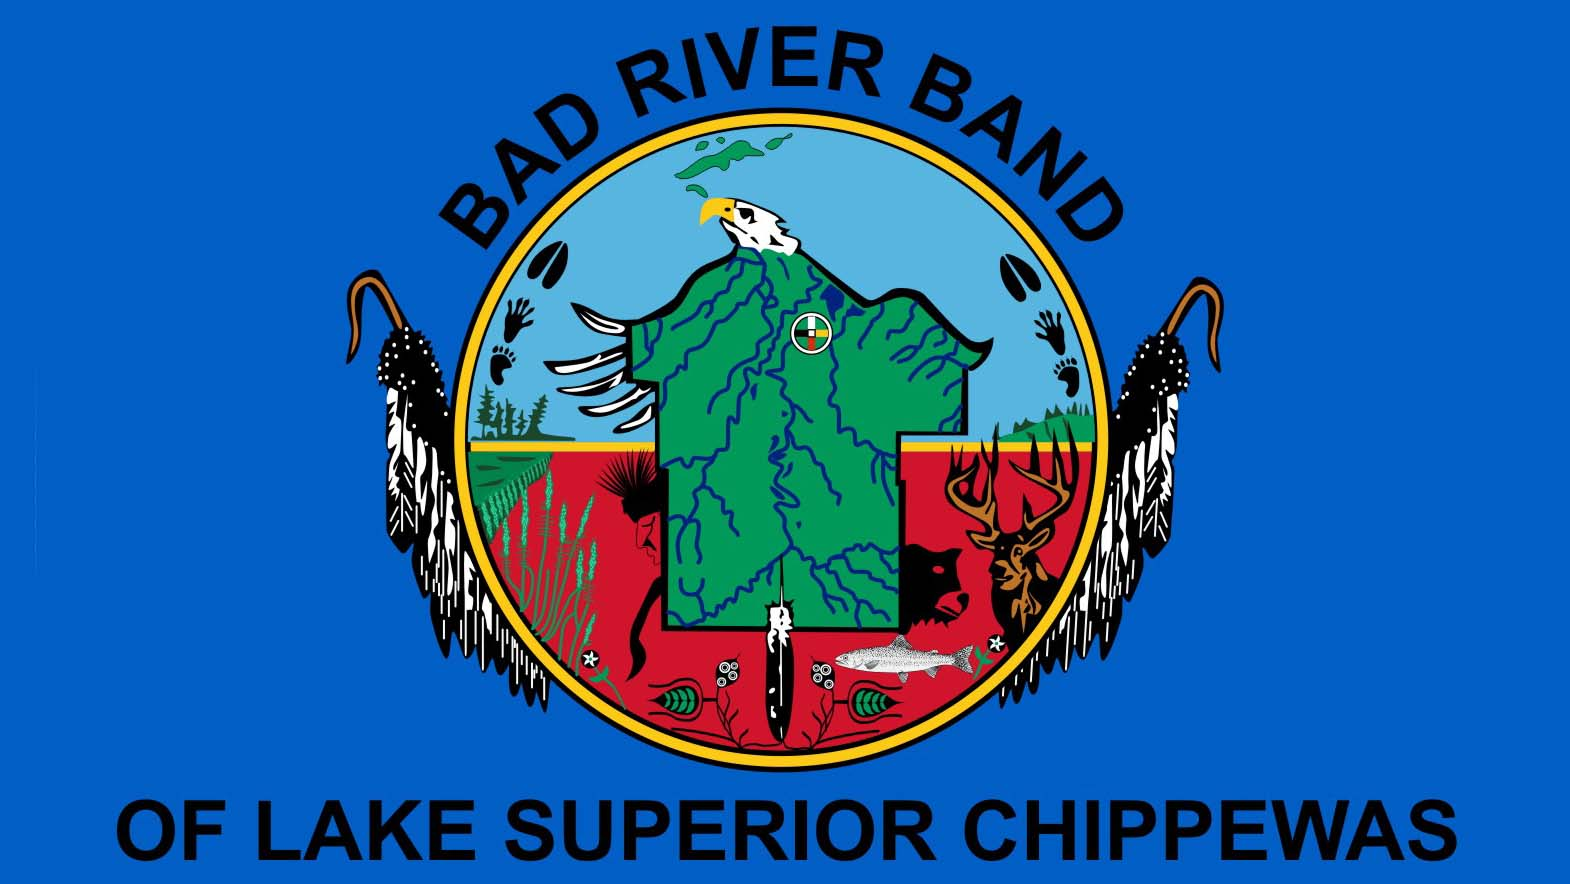 Bad_River_Band.jpg